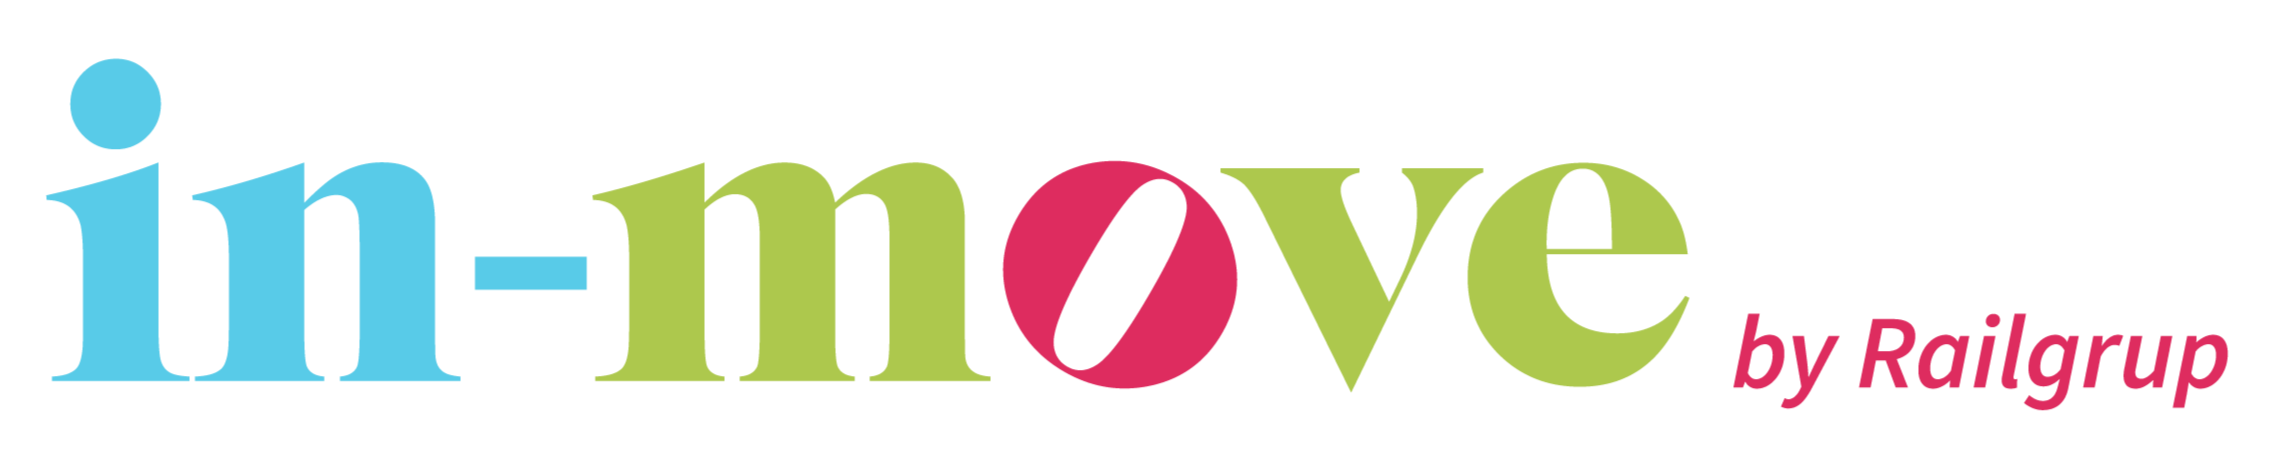 https://www.imcmobilitycongress.com/wp-content/uploads/2021/09/In-Move_Logotipo_Principal-1.png